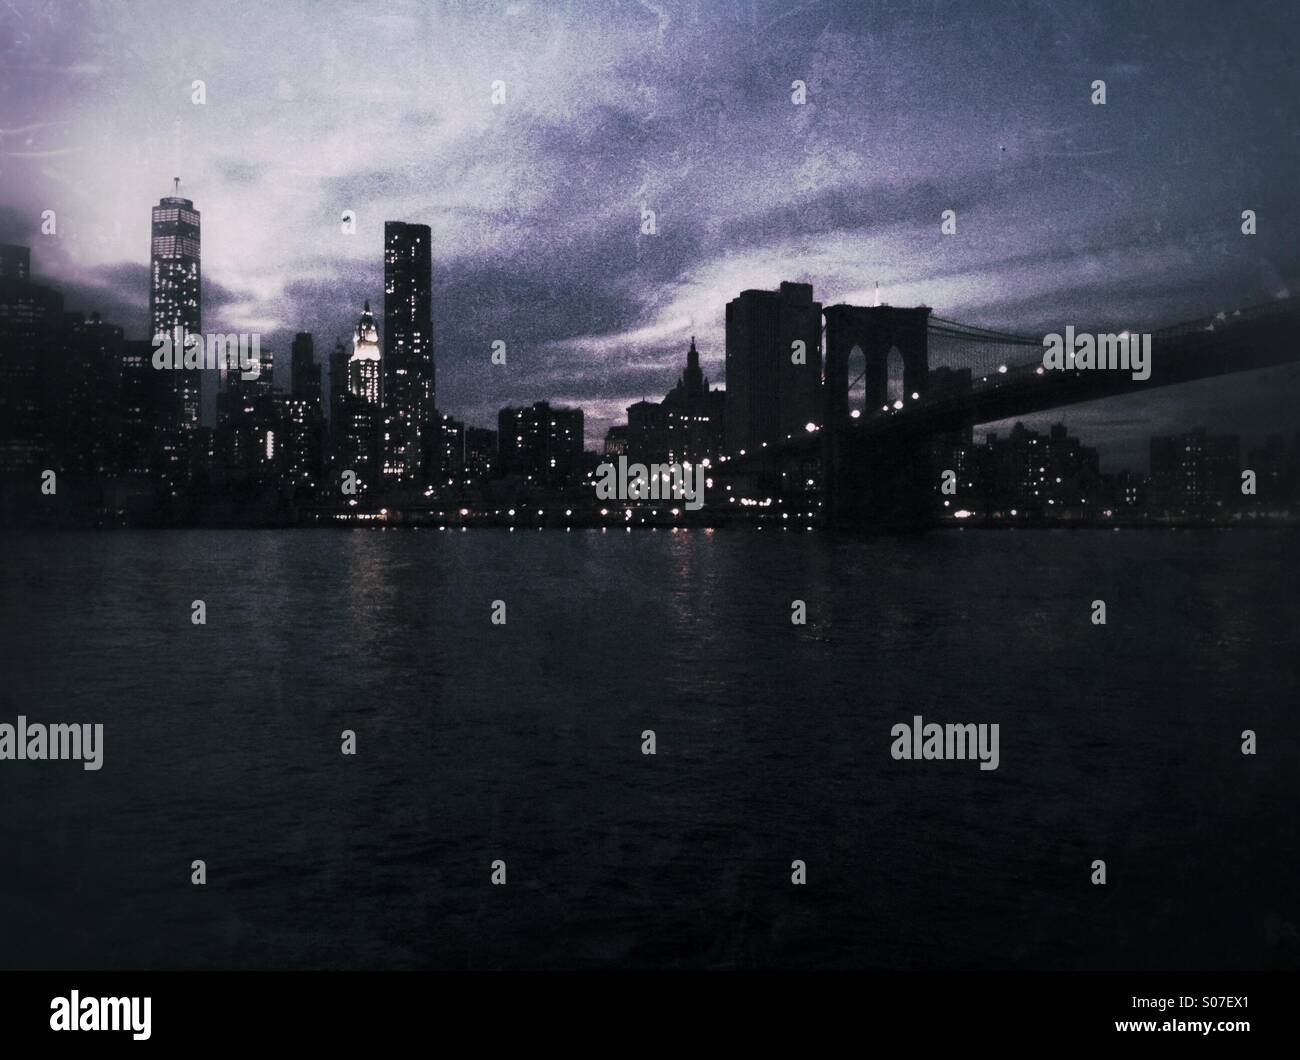 Night shot of New York City skyline including Brooklyn Bridge. Grunge style - Stock Image